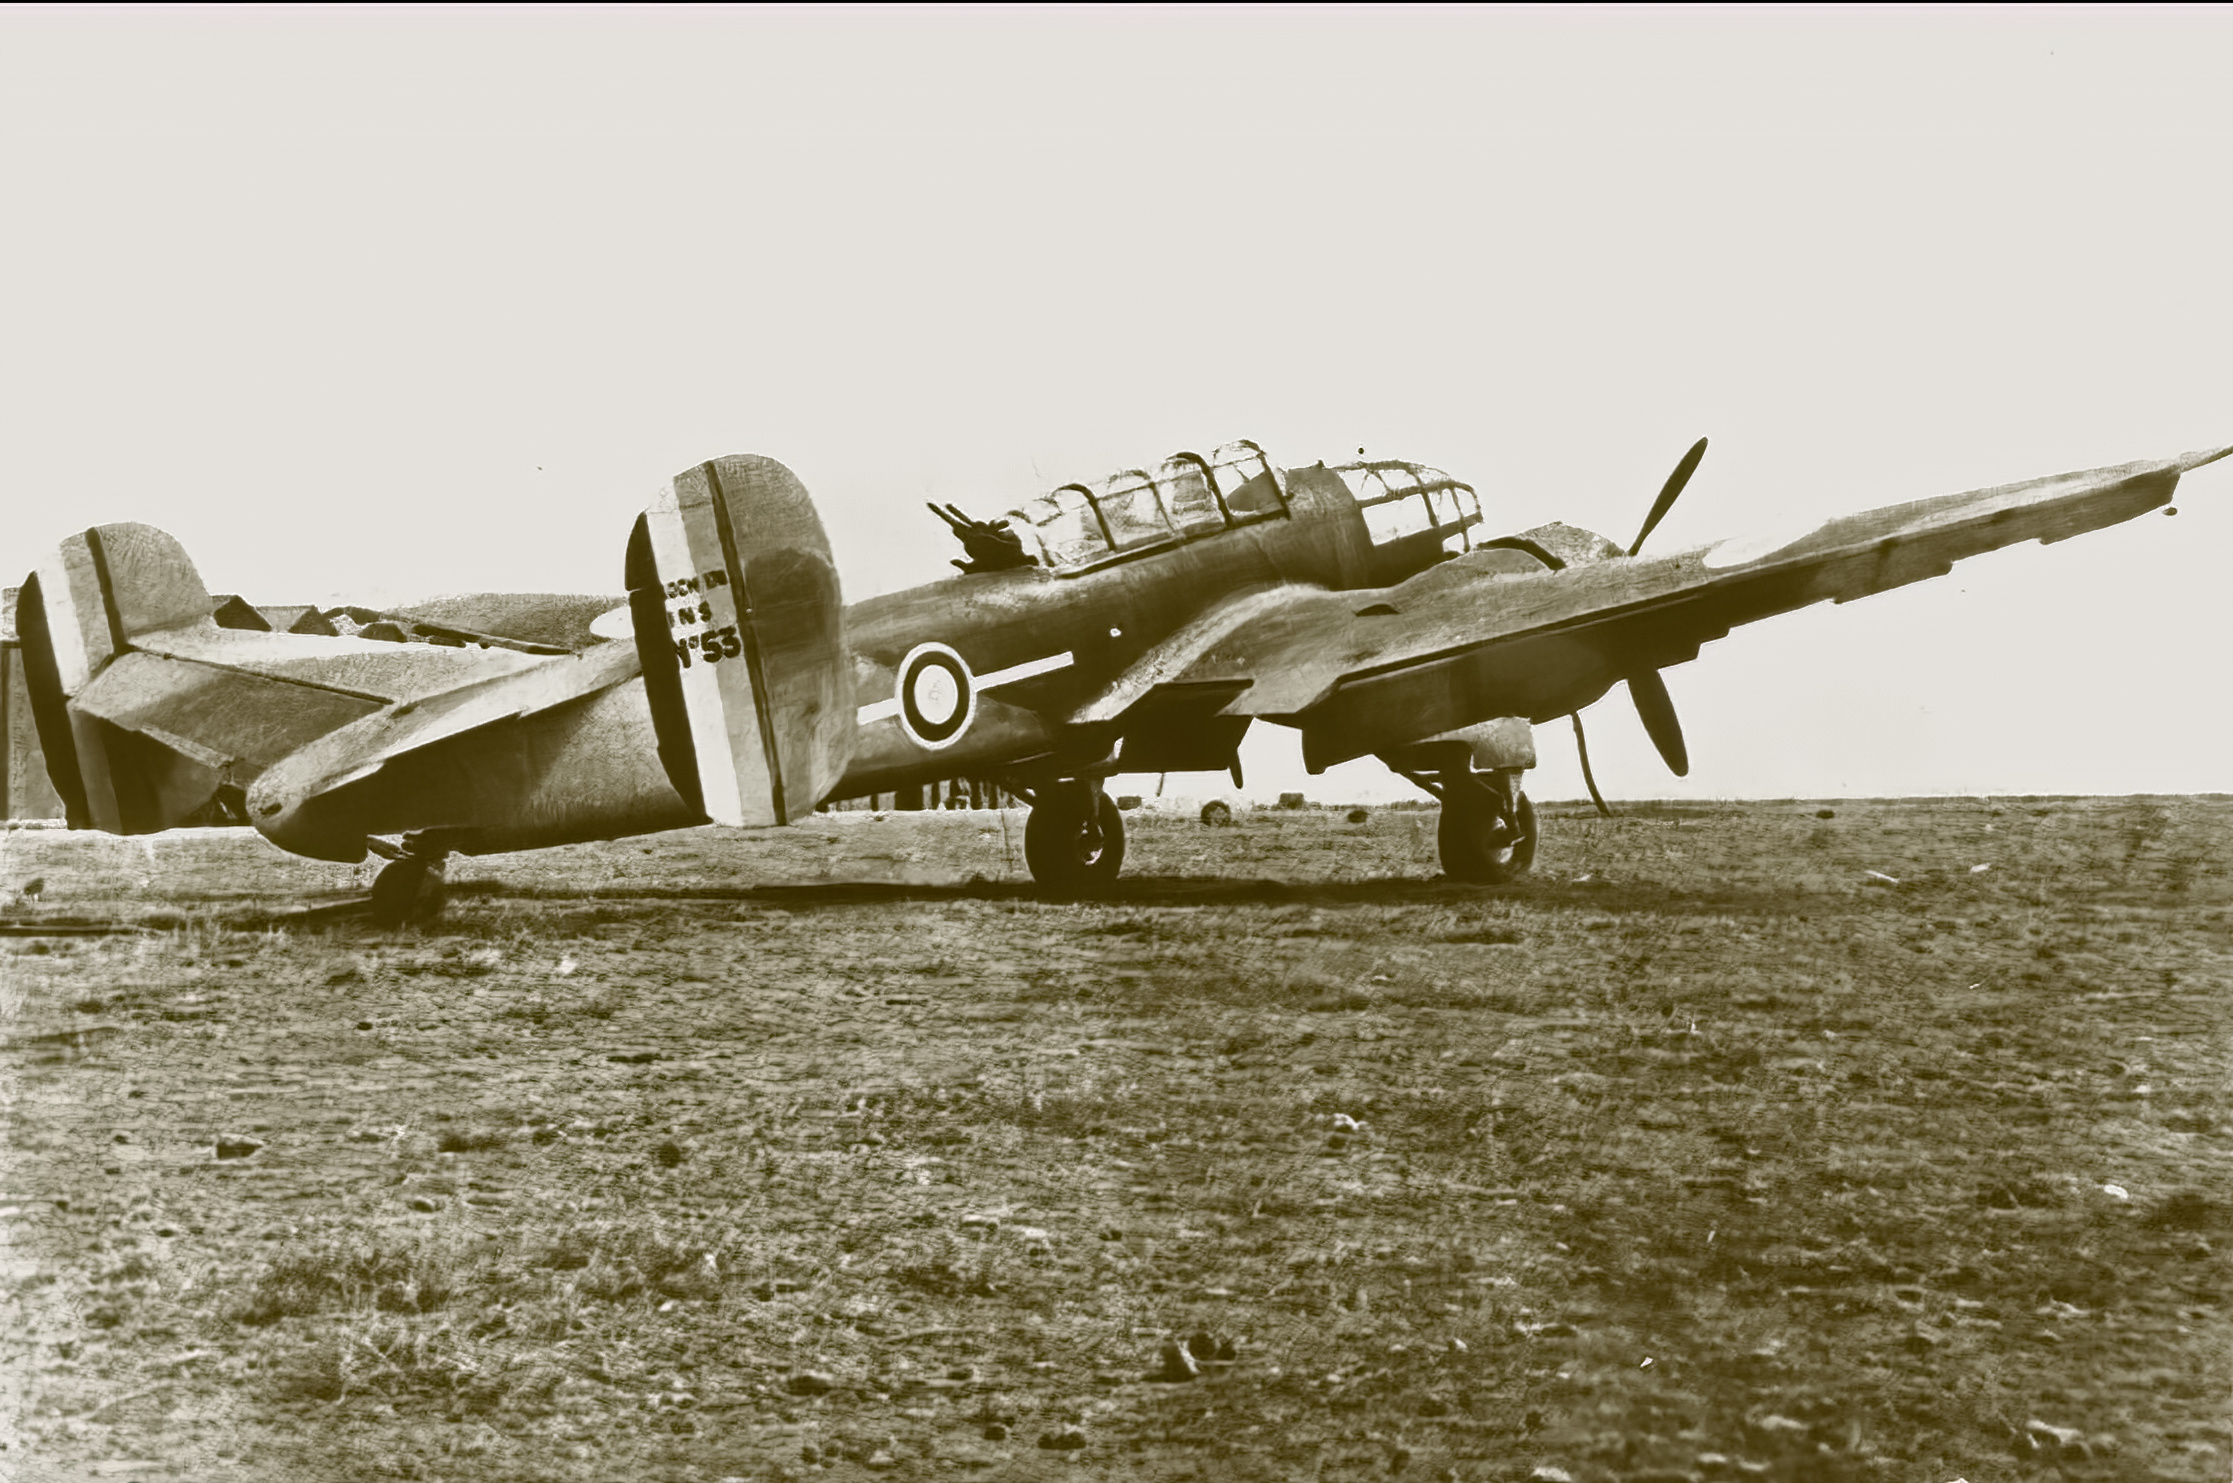 French Airforce Bloch MB 174 sn53 awaits deployment France ebay 01